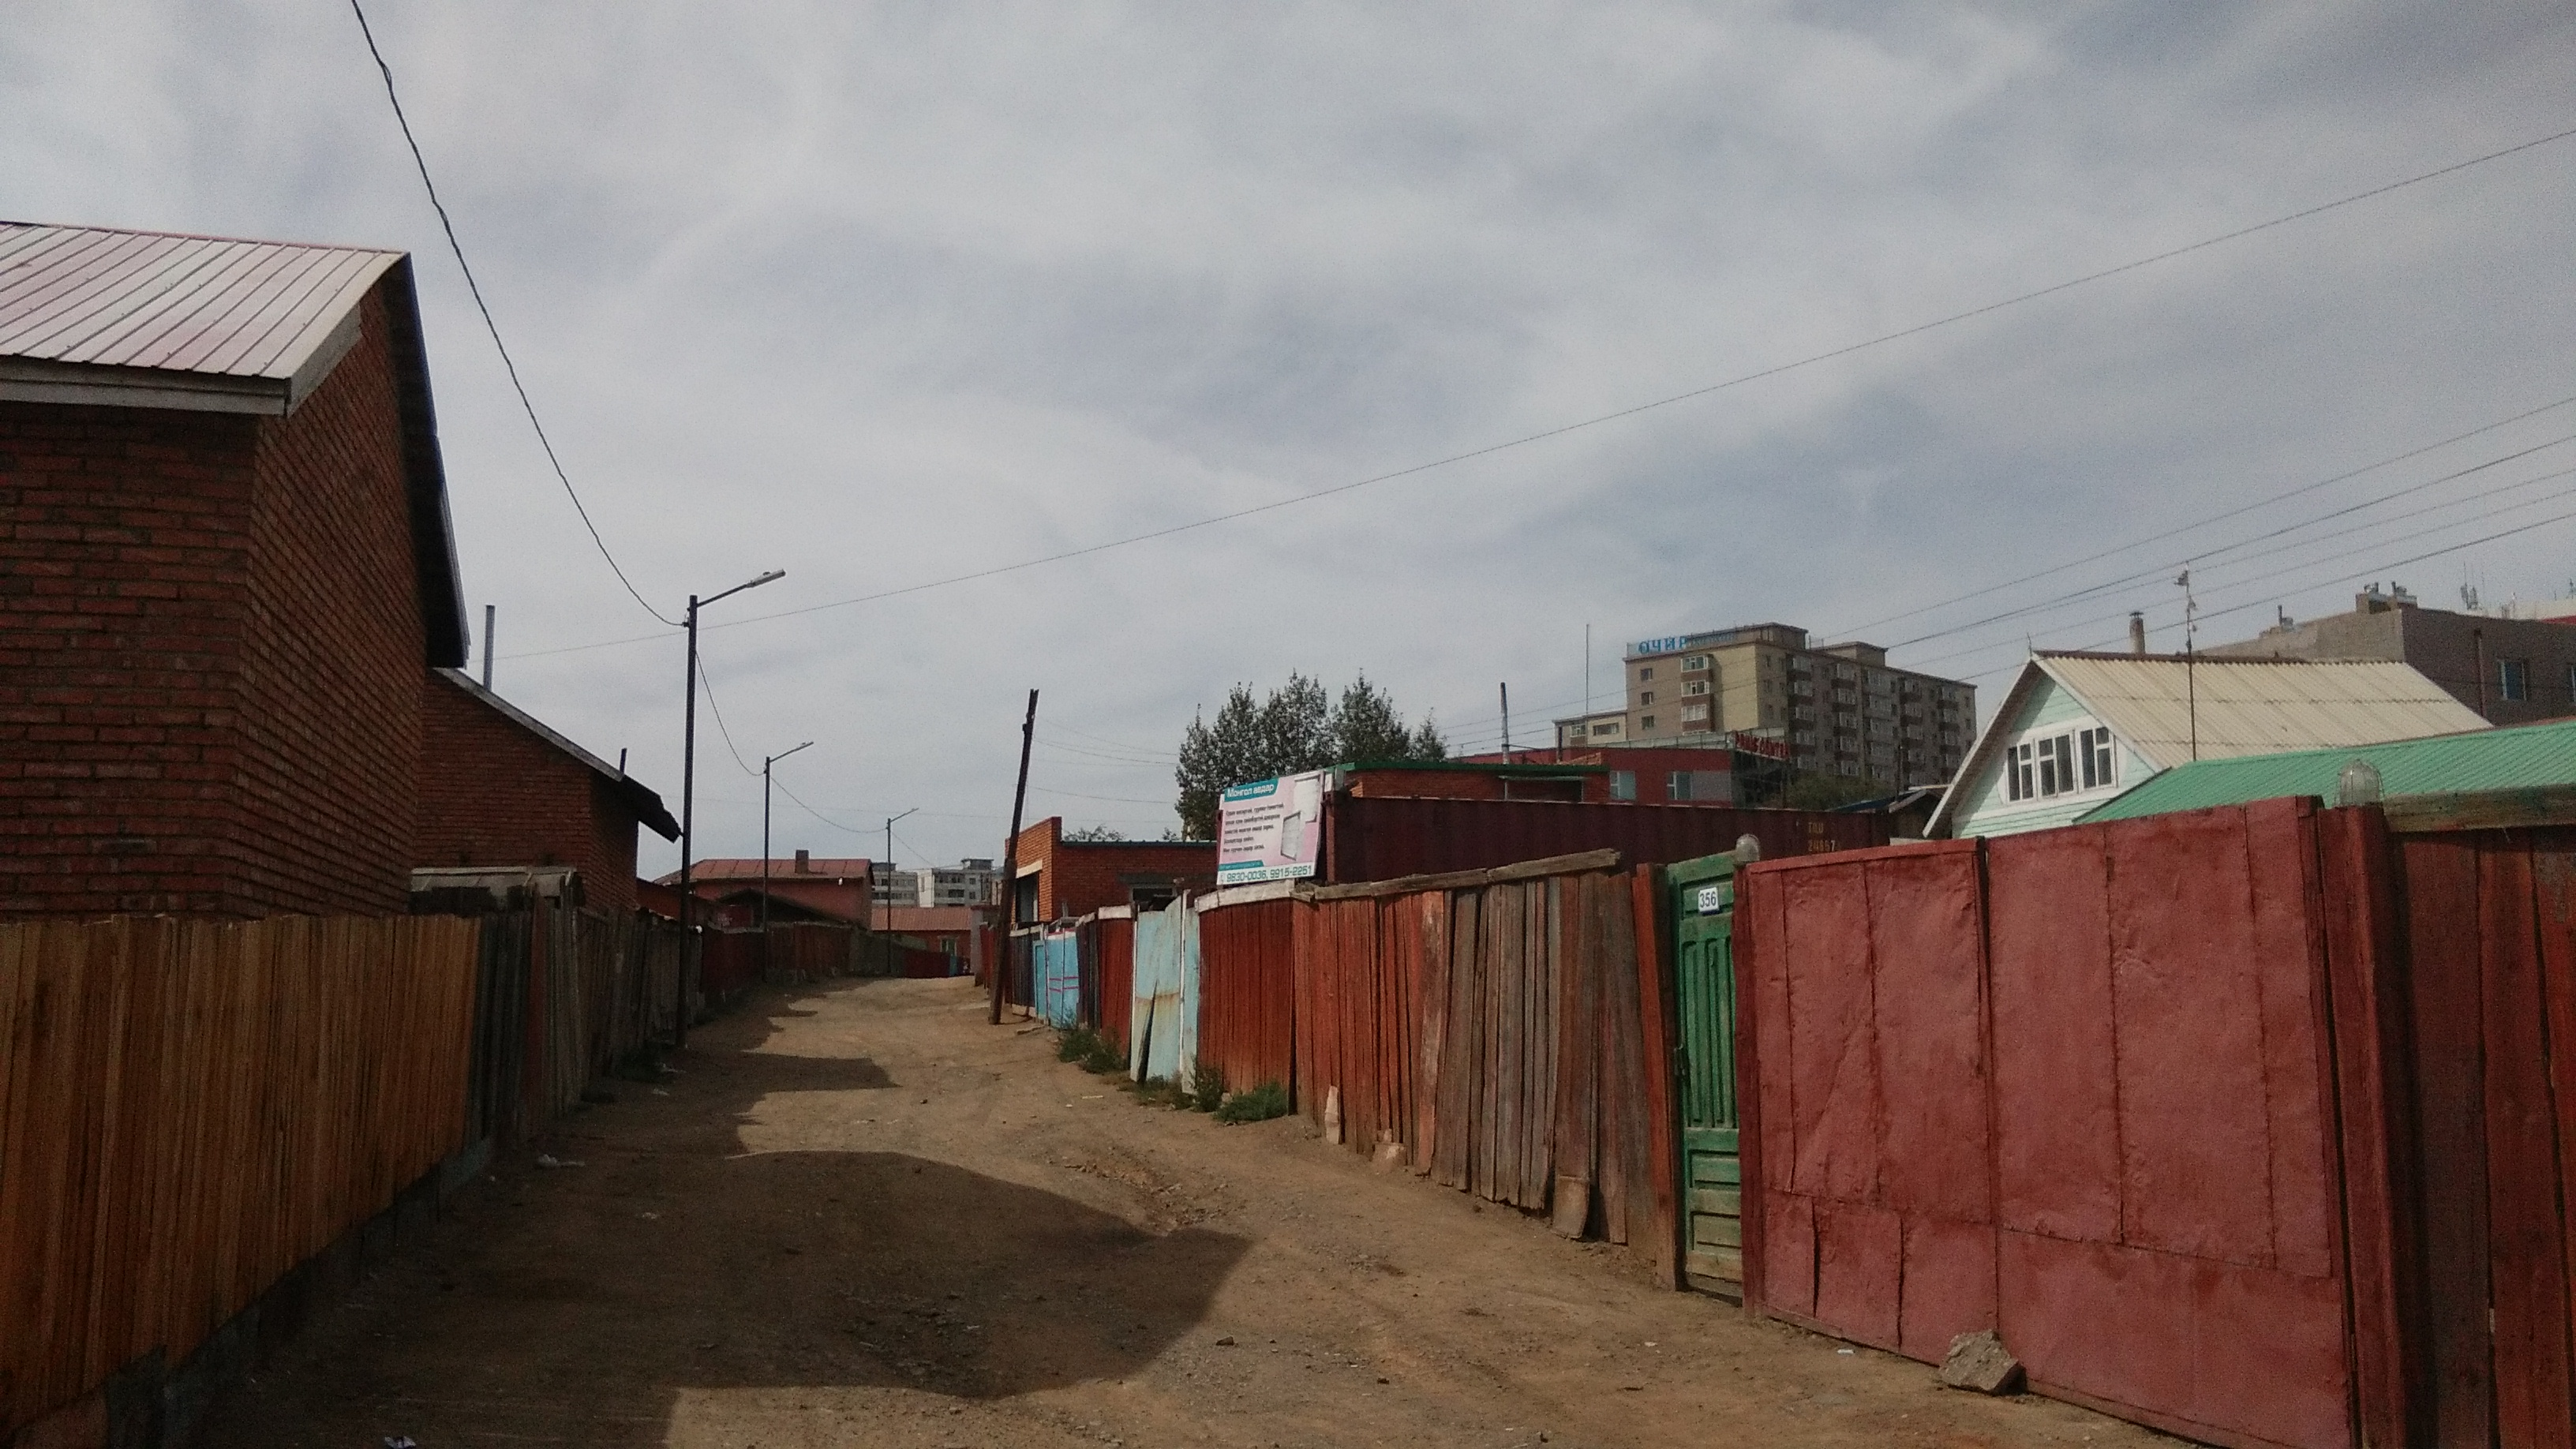 Alley in Ulan Bator outside the center